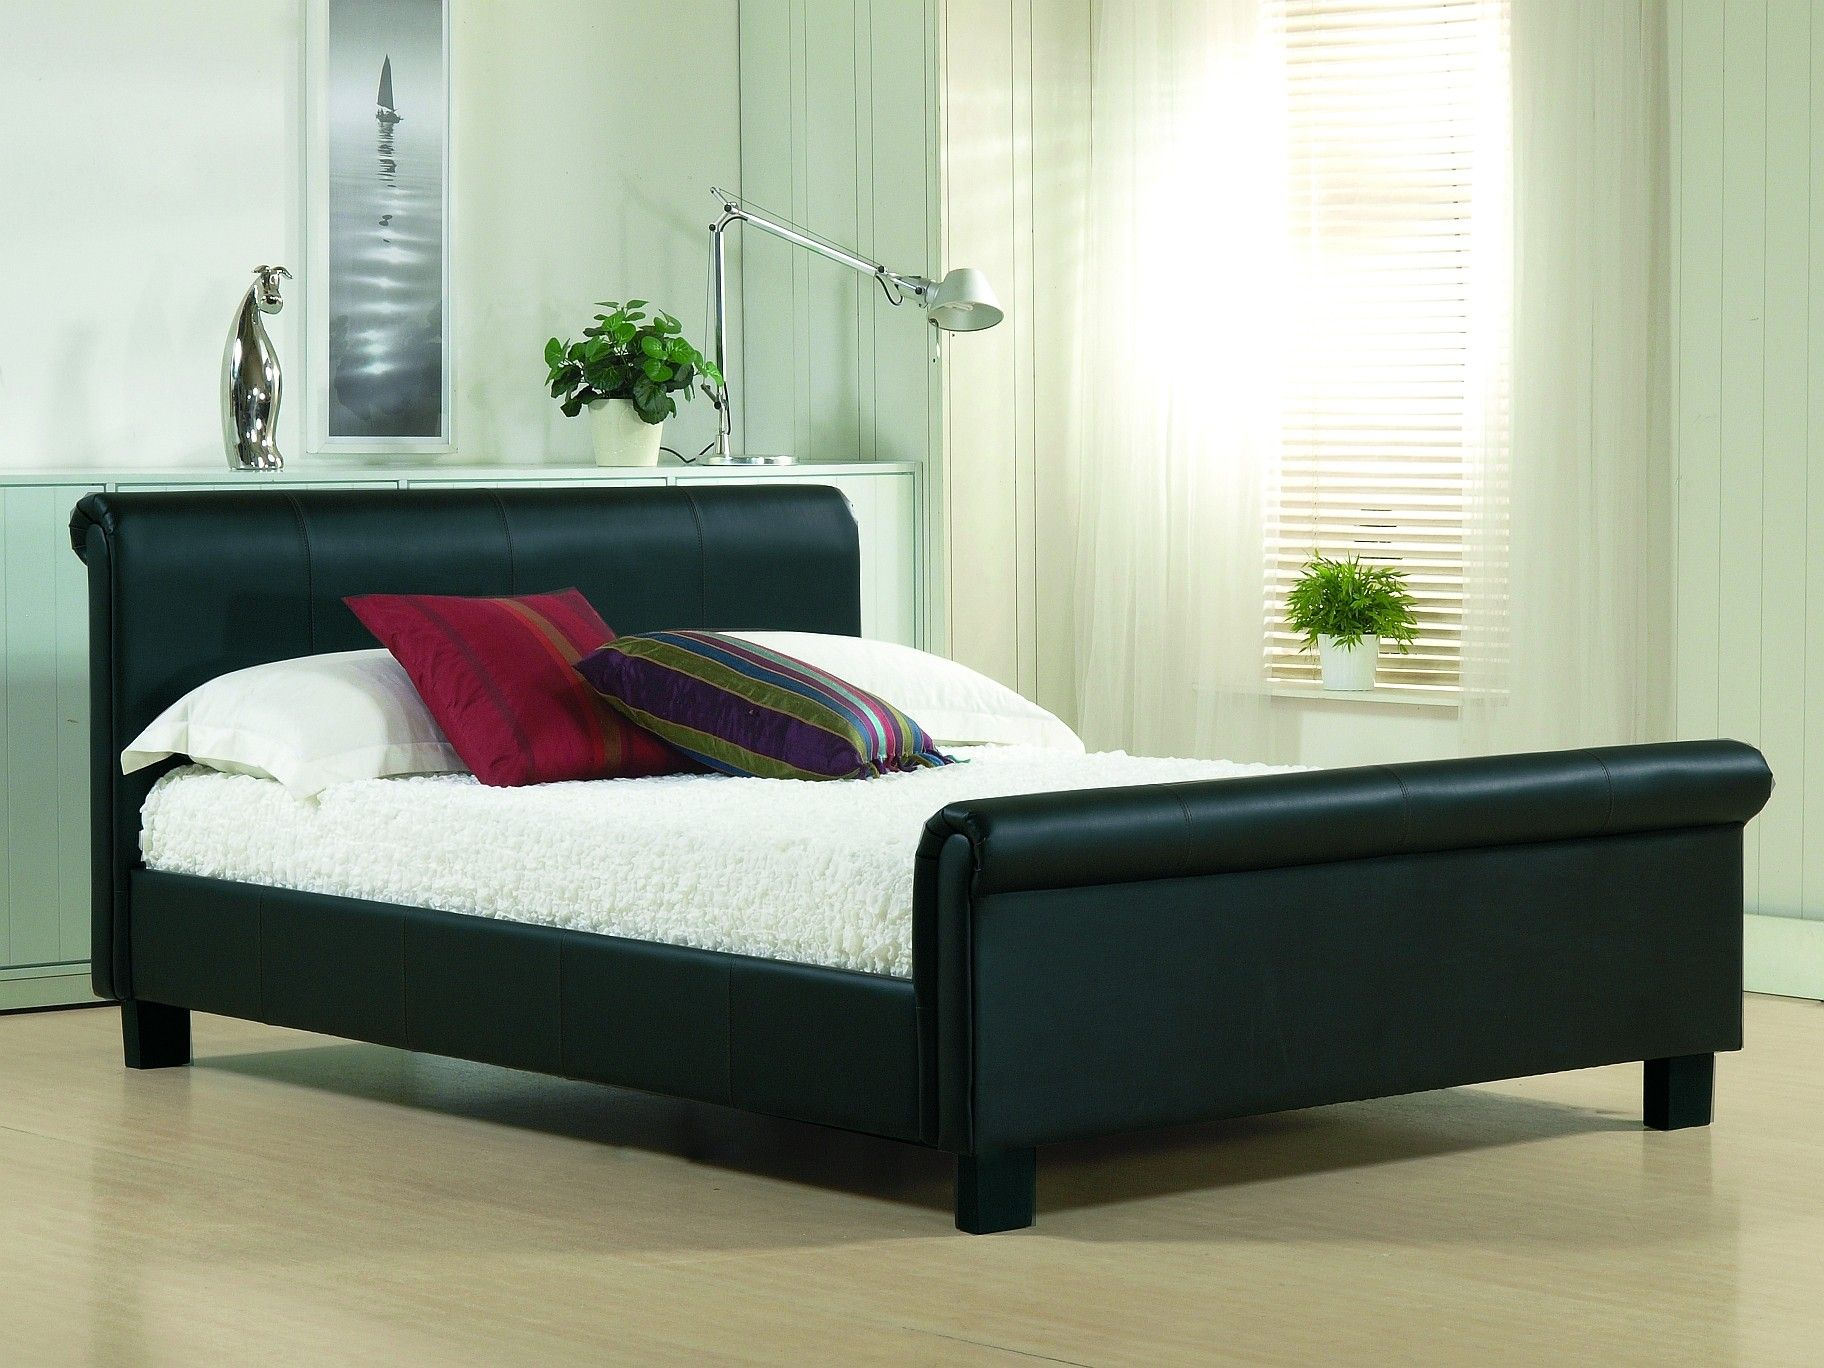 Black Leather Wood Bed Frames With Boxspring Double Click On Above Image To View Full Picture